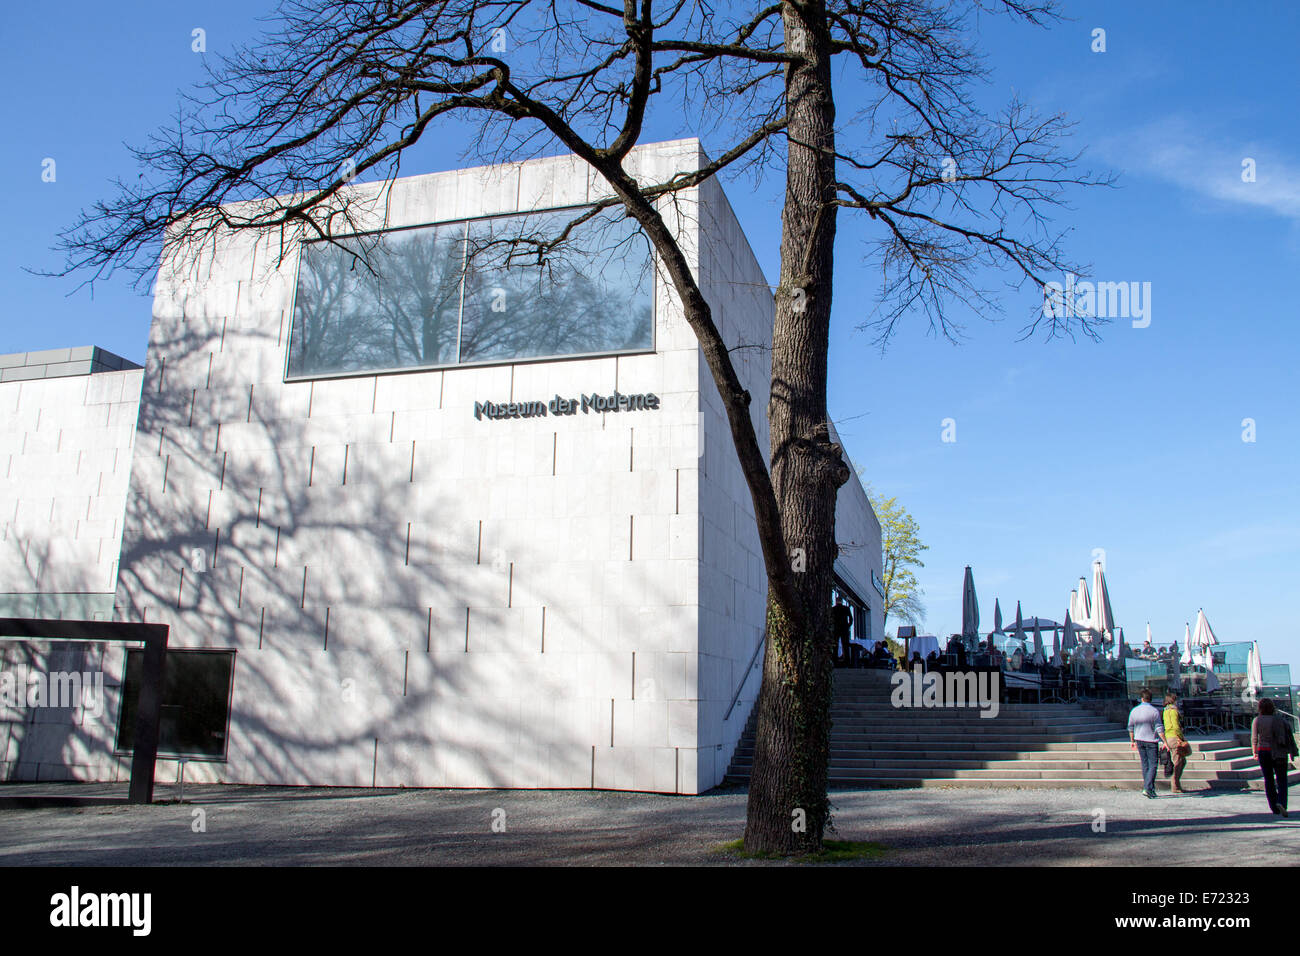 Austria: New building of Museum der Moderne Salzburg (Museum of Modern Art)  Photo from 30 March 2014. Stock Photo